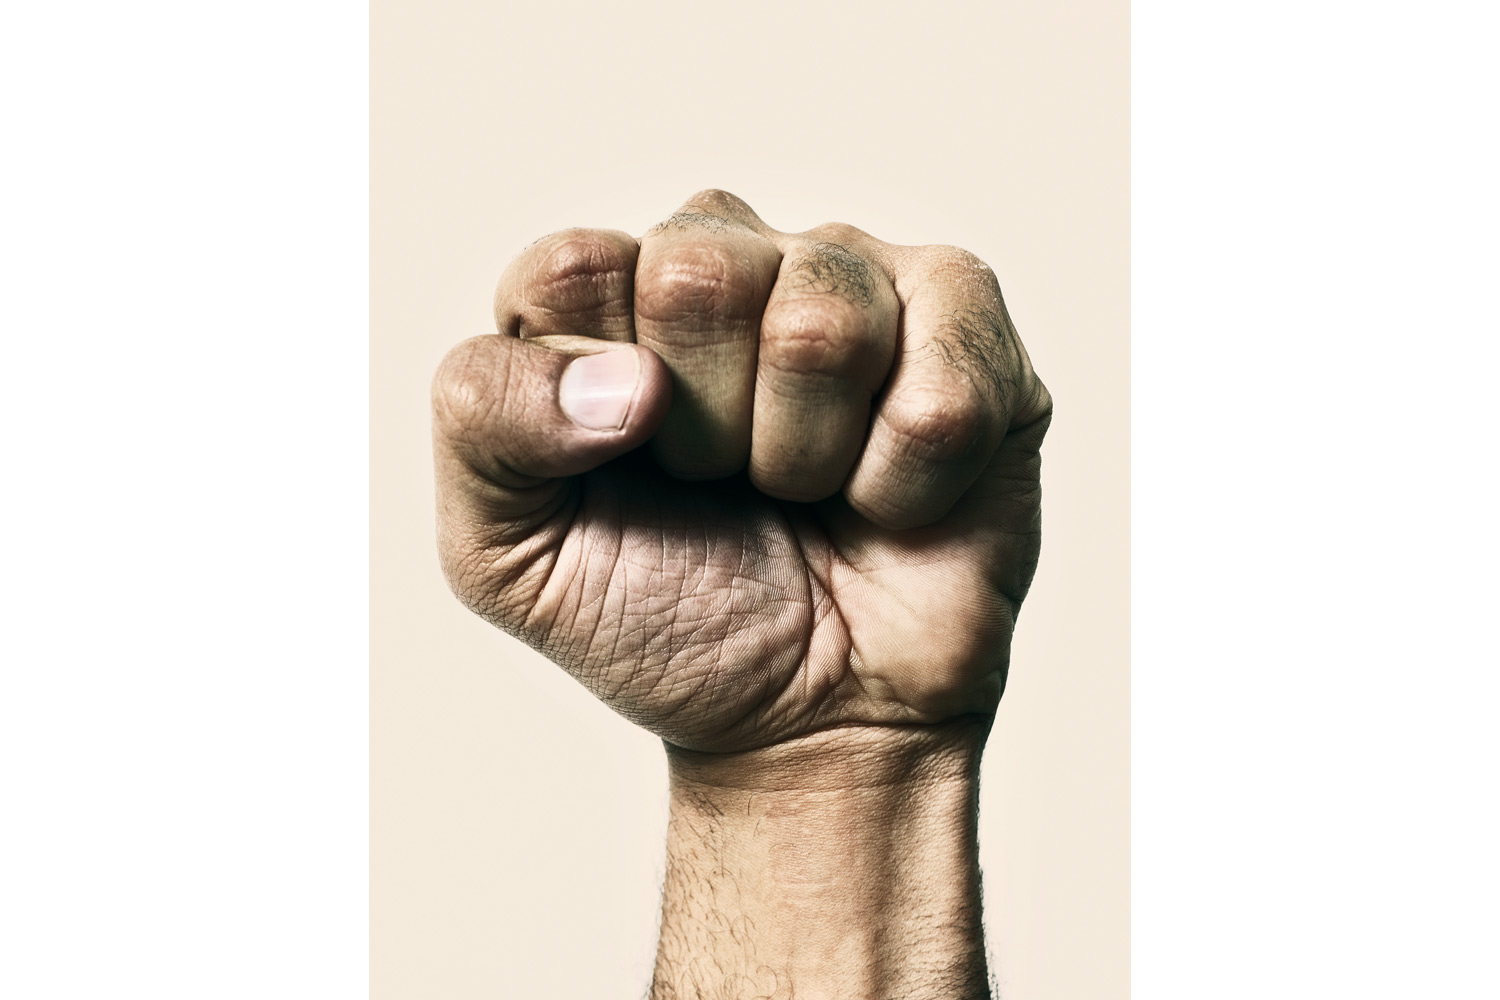 The clenched fist of an Egyptian protester.